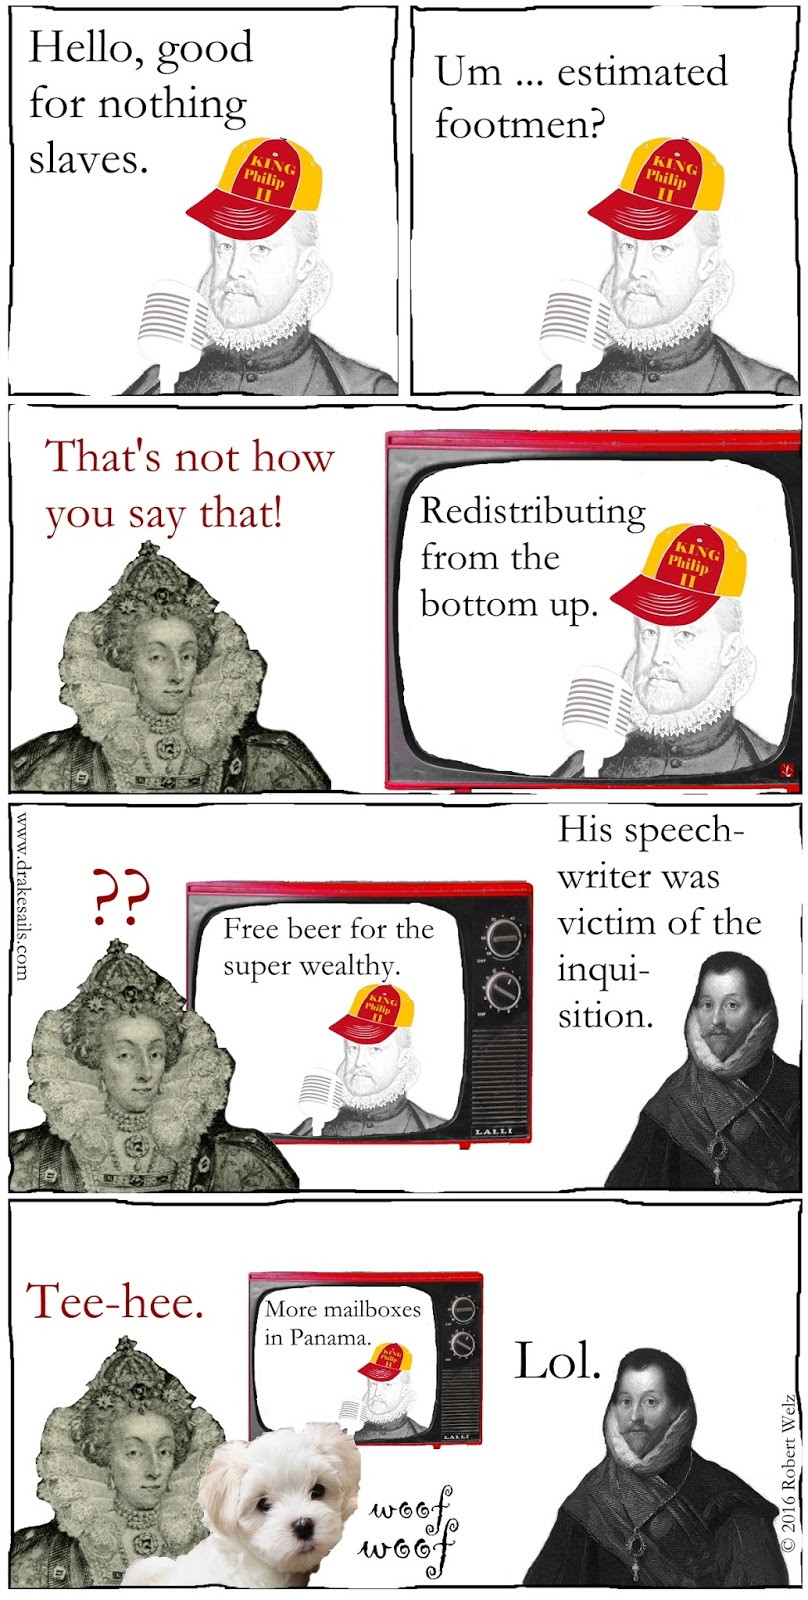 history comedy satire comic. The speechwriter for King Philip II was a victim of the Spanish Inquisition. Elizabeth I and Francis Drake are amused.